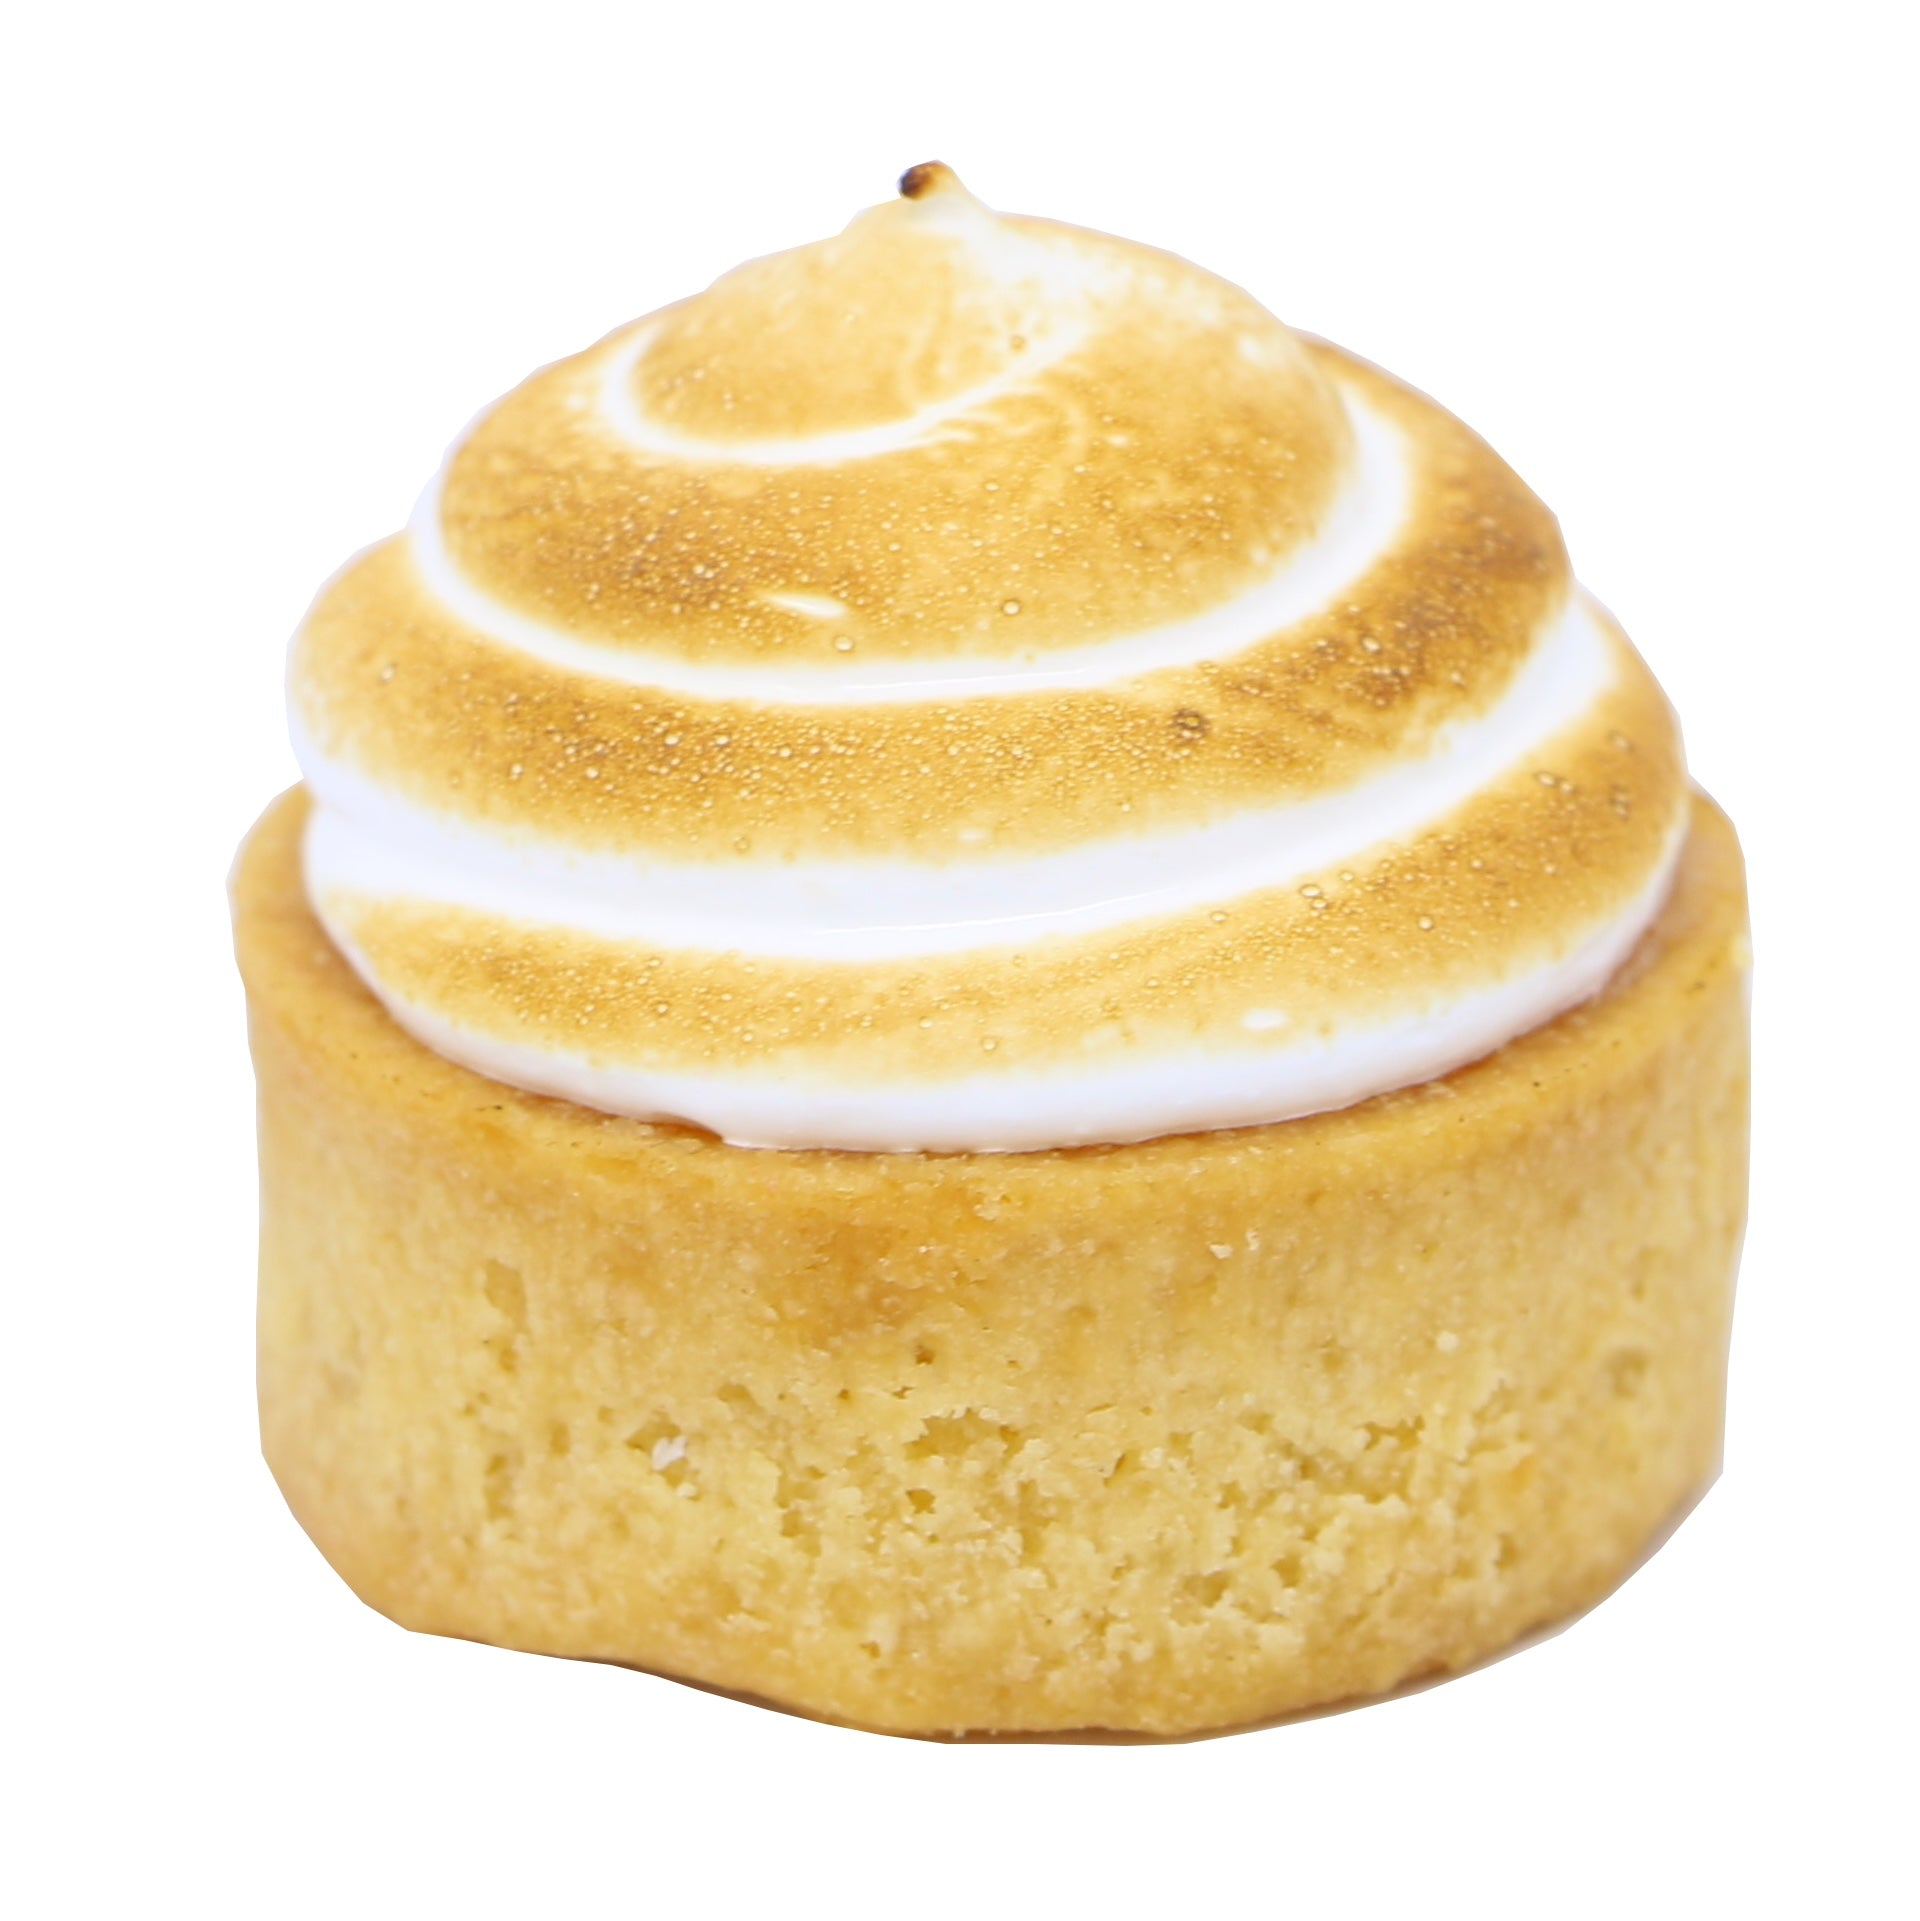 Lemon Meringue Pie (Mini) - Treats2eat - Wedding & Birthday Party Dessert Catering Near Me